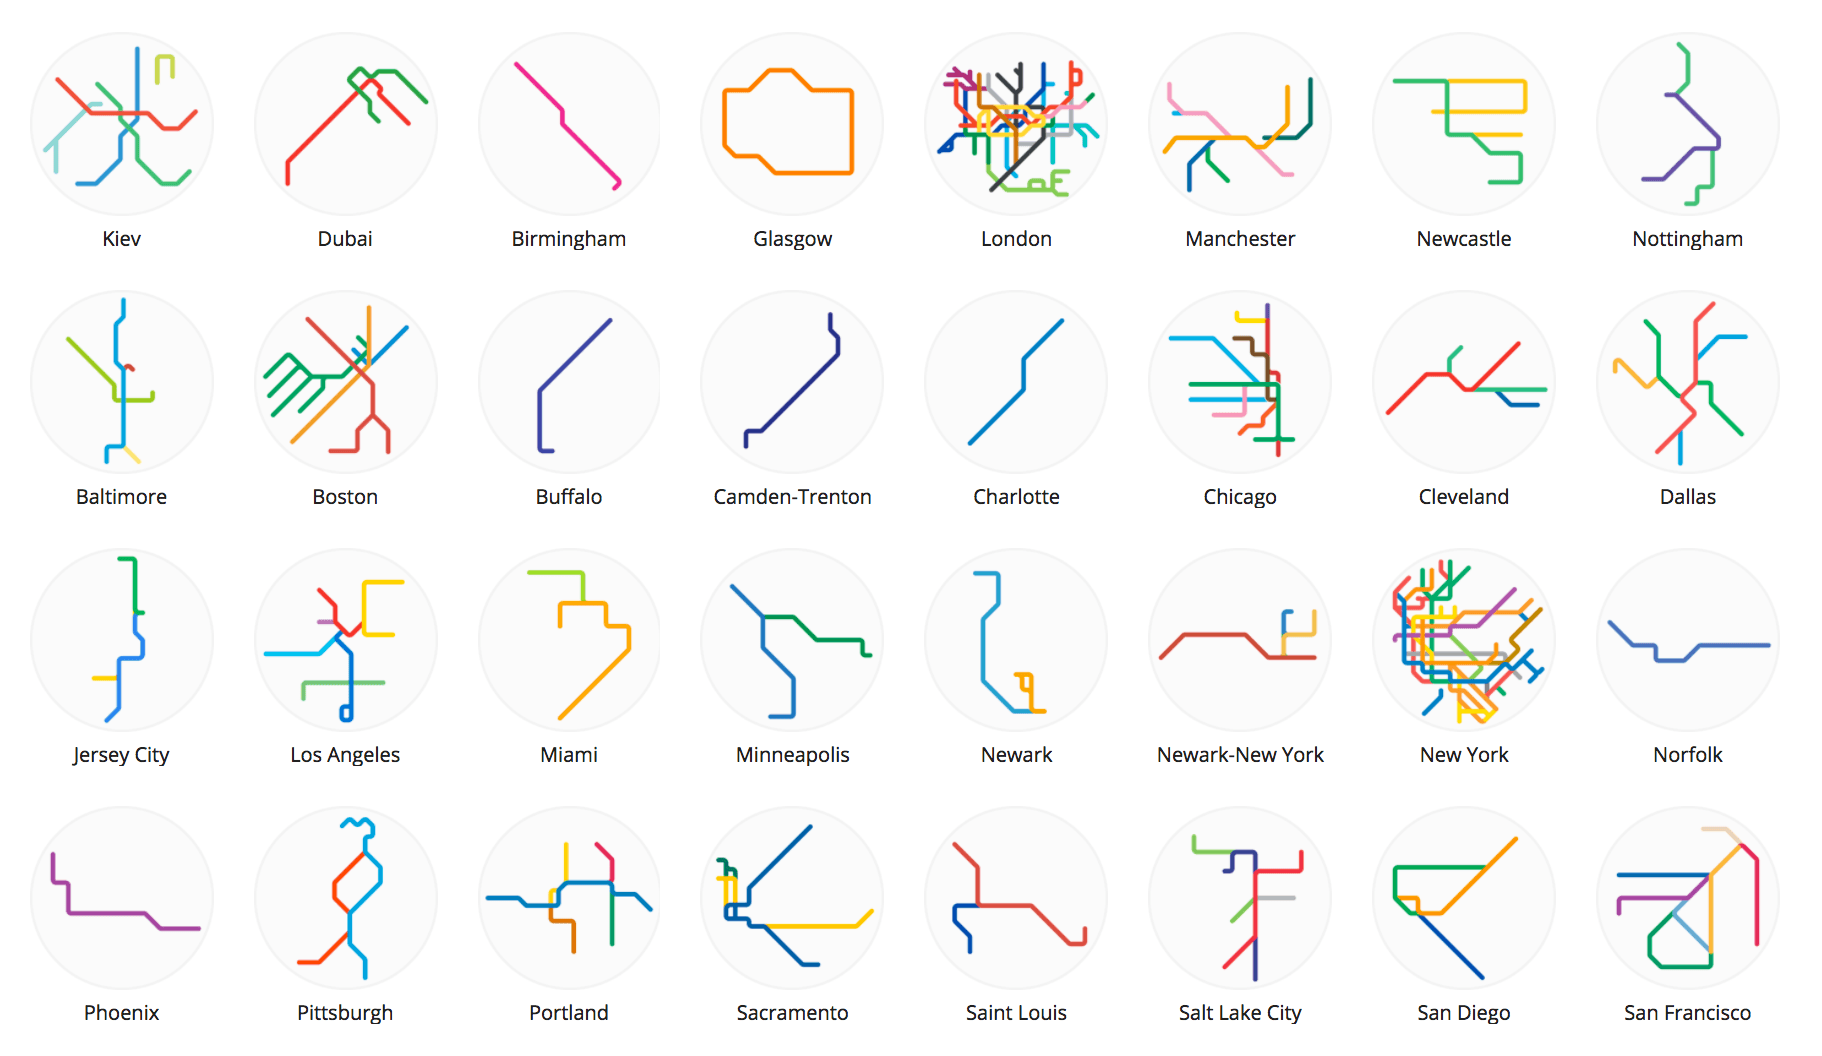 Nyc Subway Map 2017 Poster.Mini Metros Shrinks And Simplifies 220 Transit Systems From Around